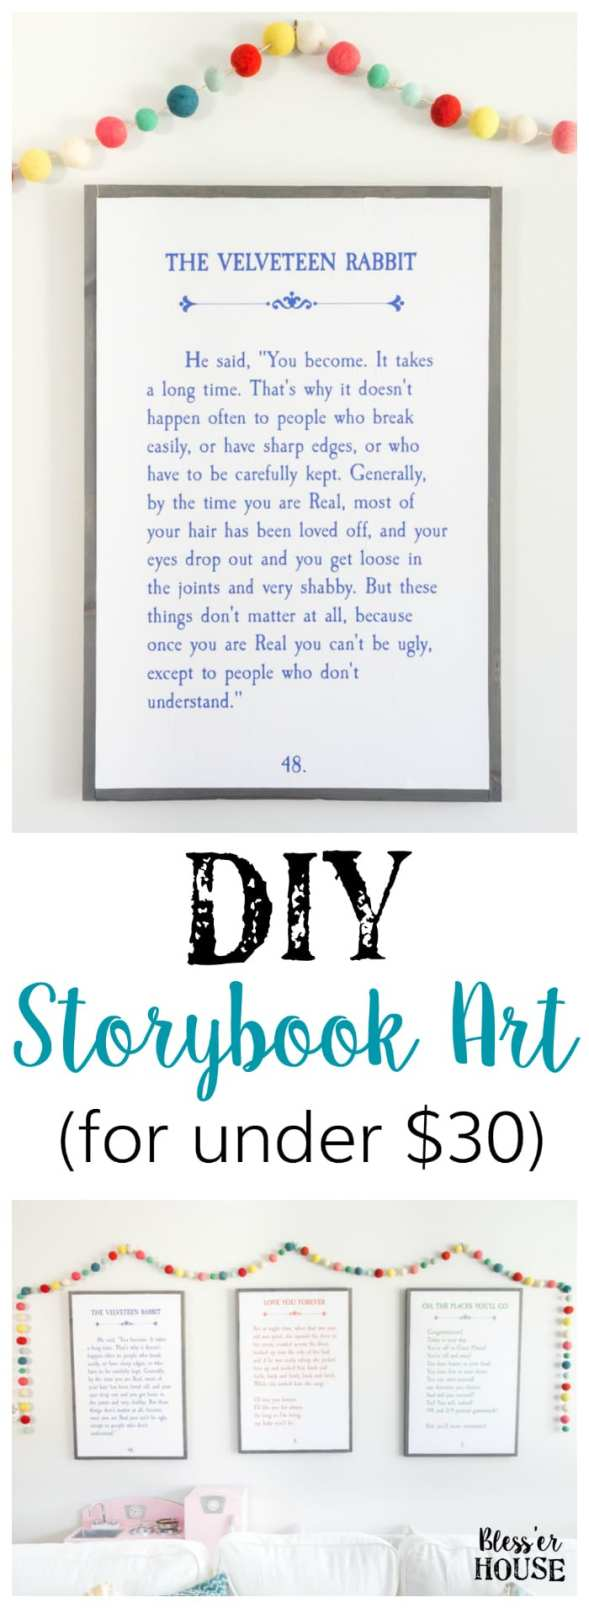 DIY Storybook Art | blesserhouse.com - How to make DIY storybook art for less than $30 using just plywood, 1x2 boards, and colored engineer prints plus 3 free printables.